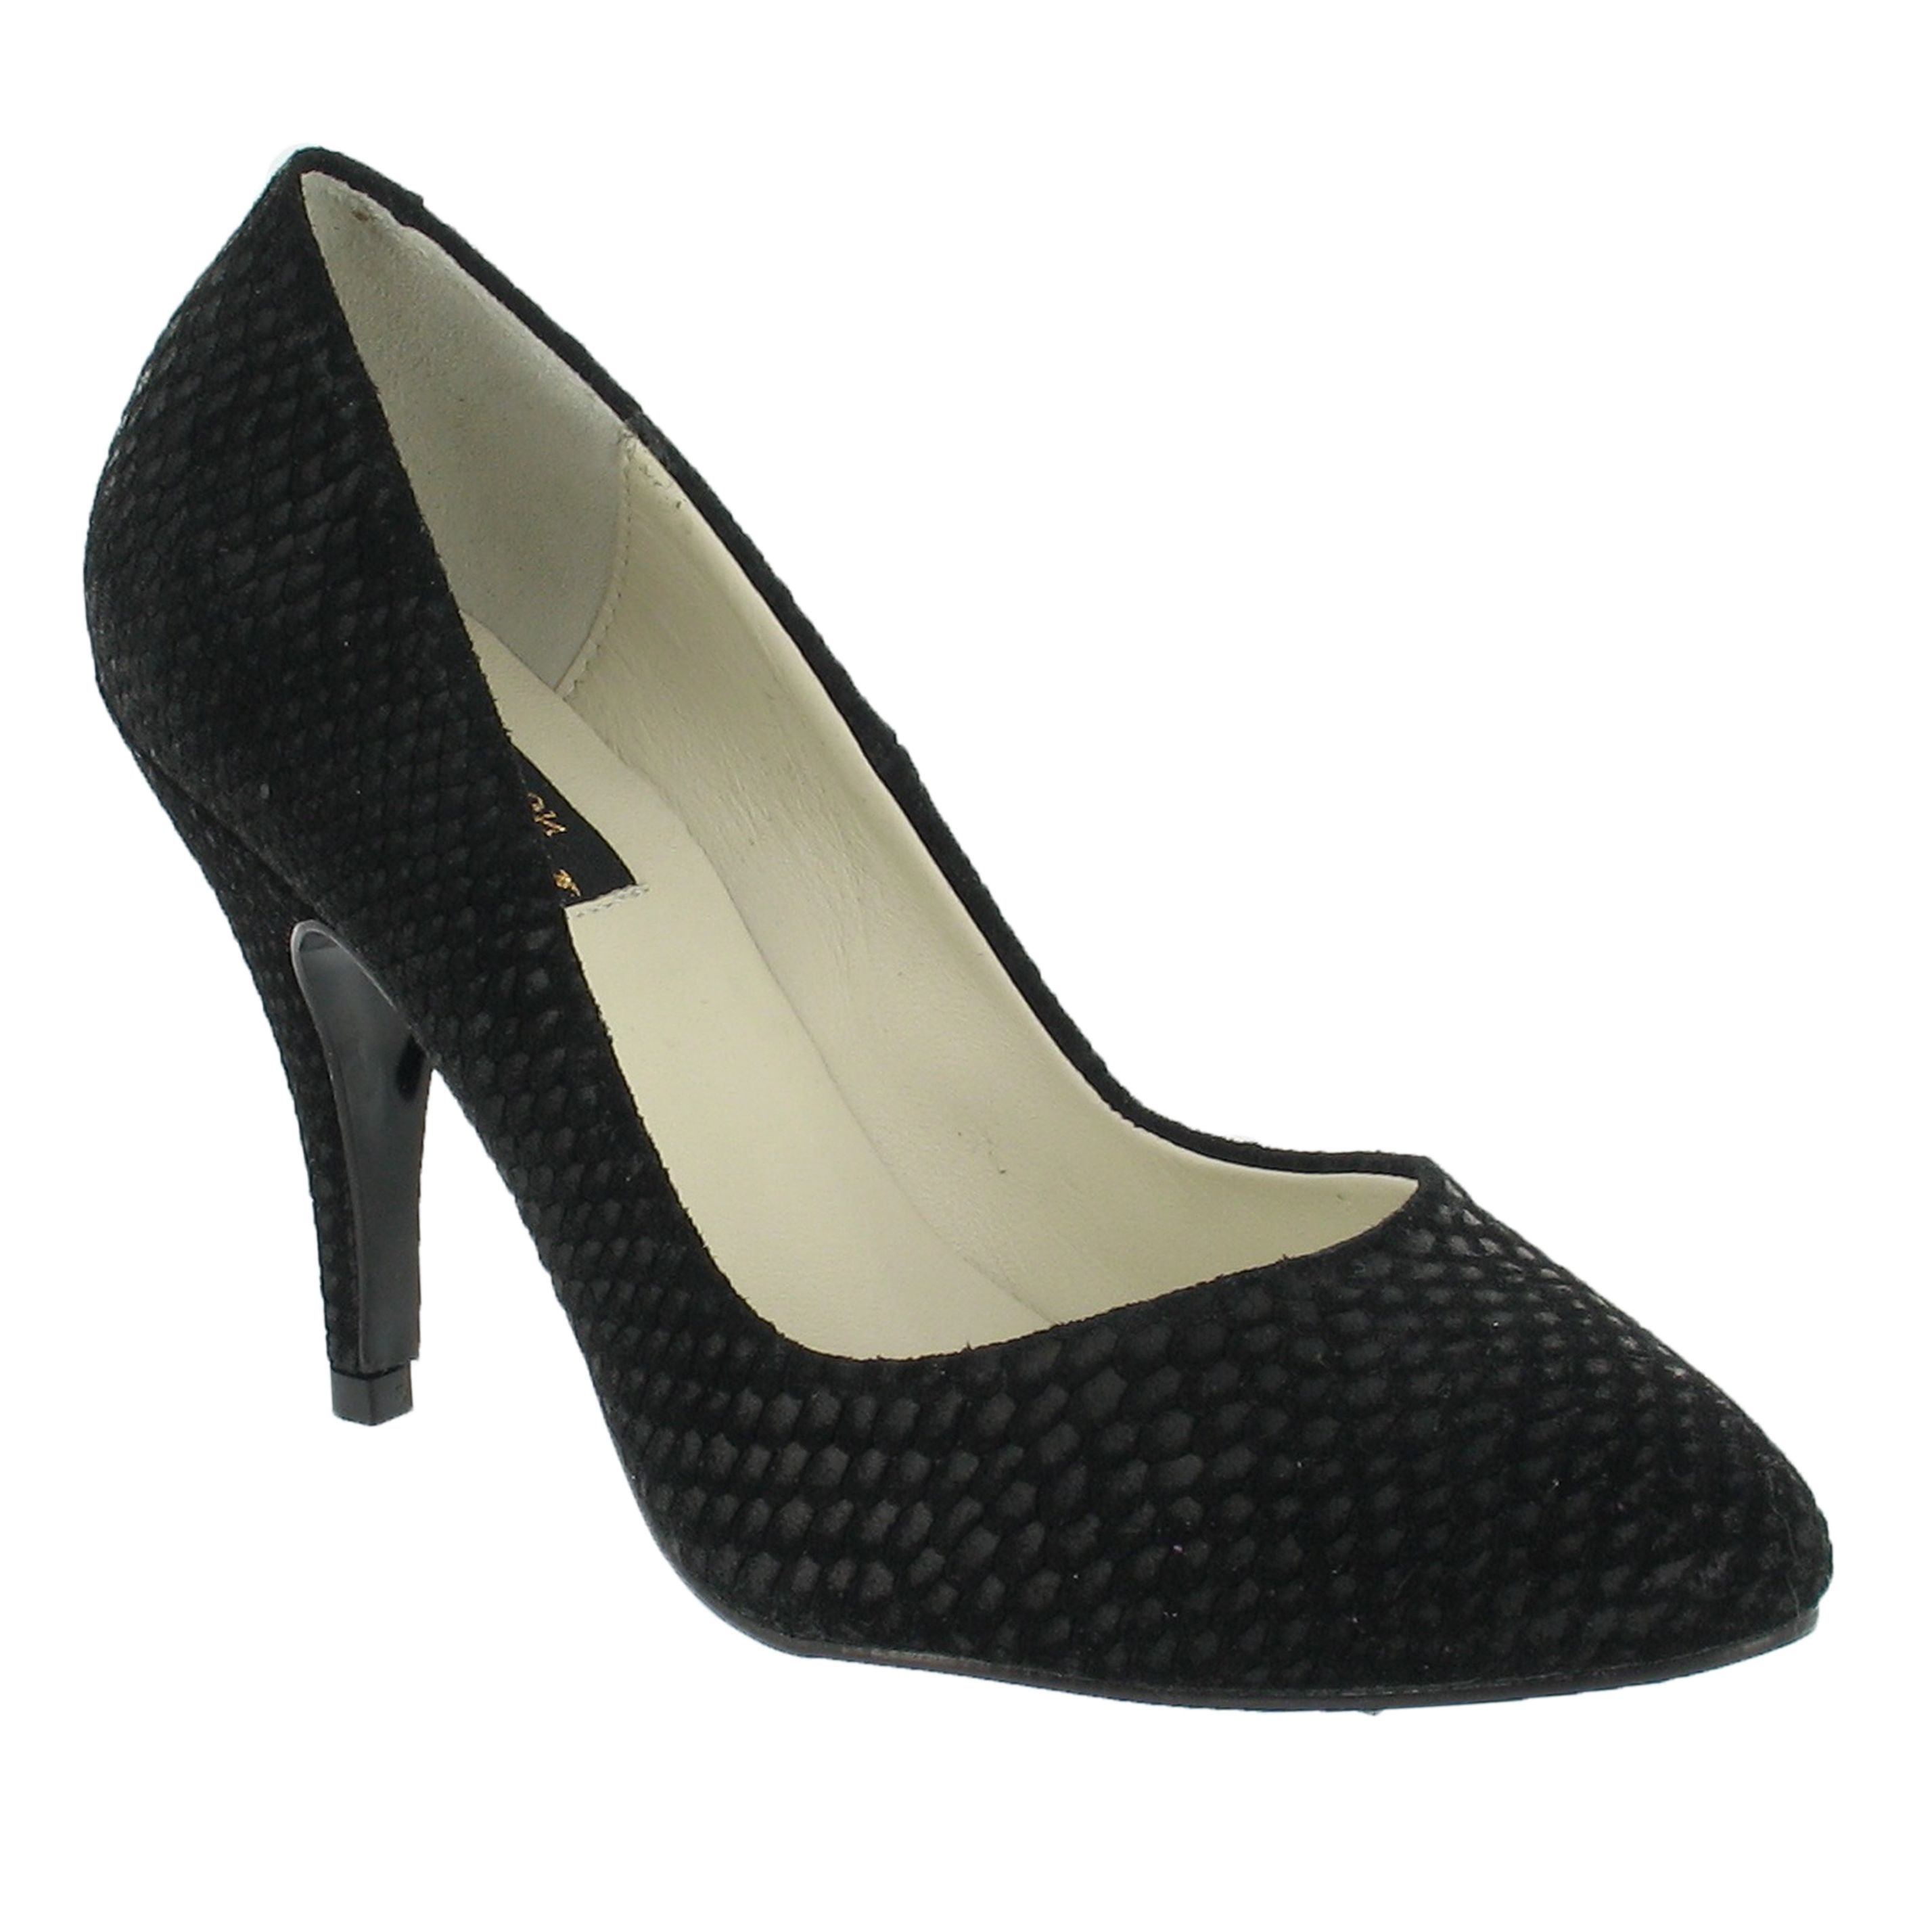 marta jonsson high heeled court shoes in black lyst